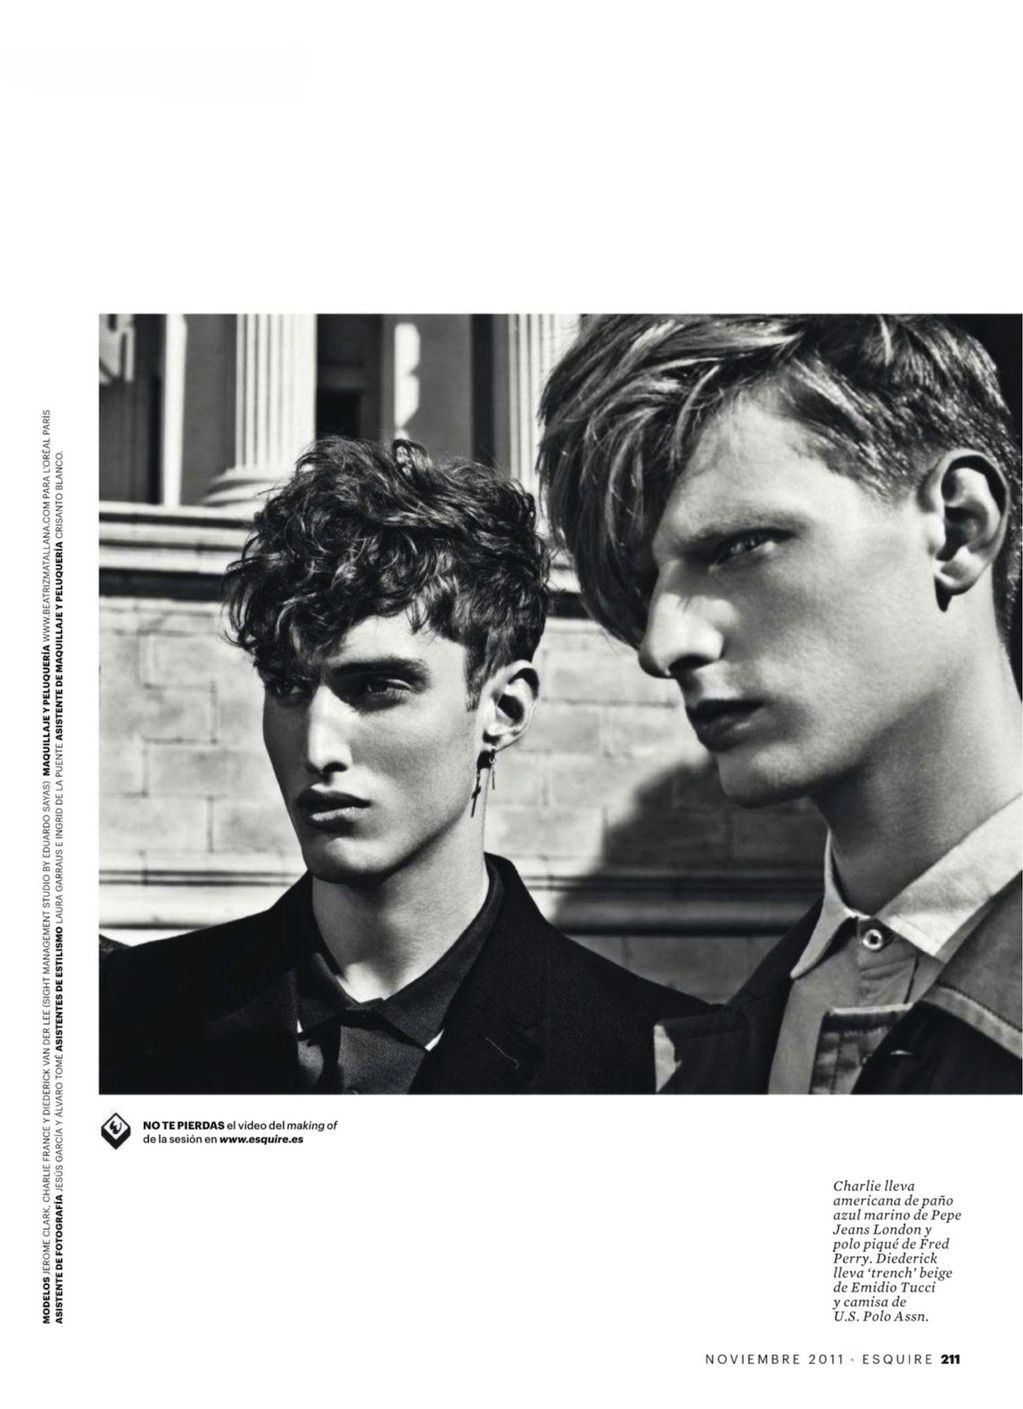 Esquire Spain December 2011_029Charlie France,Diederik Van der Lee(Flashbang@TFS)